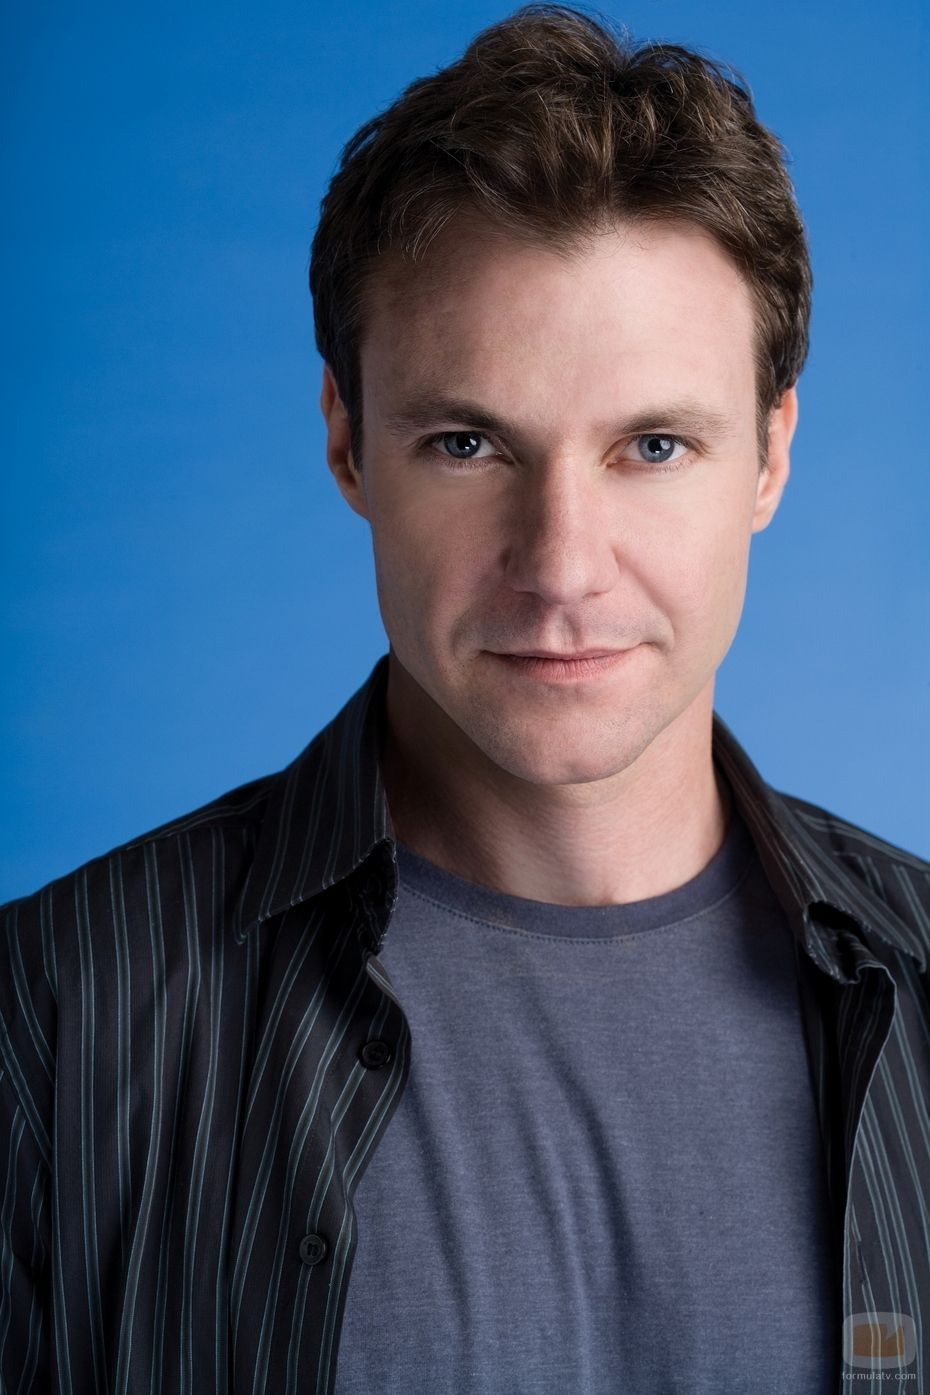 chris vance taşıyıcıchris vance twitter, chris vance height, chris vance wedding, chris vance (actor), chris vance 2016, chris vance imdb, chris vance transporter season 3, chris vance instagram, chris vance, chris vance wife, chris vance biography, chris vance rizzoli and isles, chris vance martial arts, chris vance wiki, chris vance dexter, chris vance movies, chris vance art, chris vance for senate, chris vance wikipedia, chris vance taşıyıcı